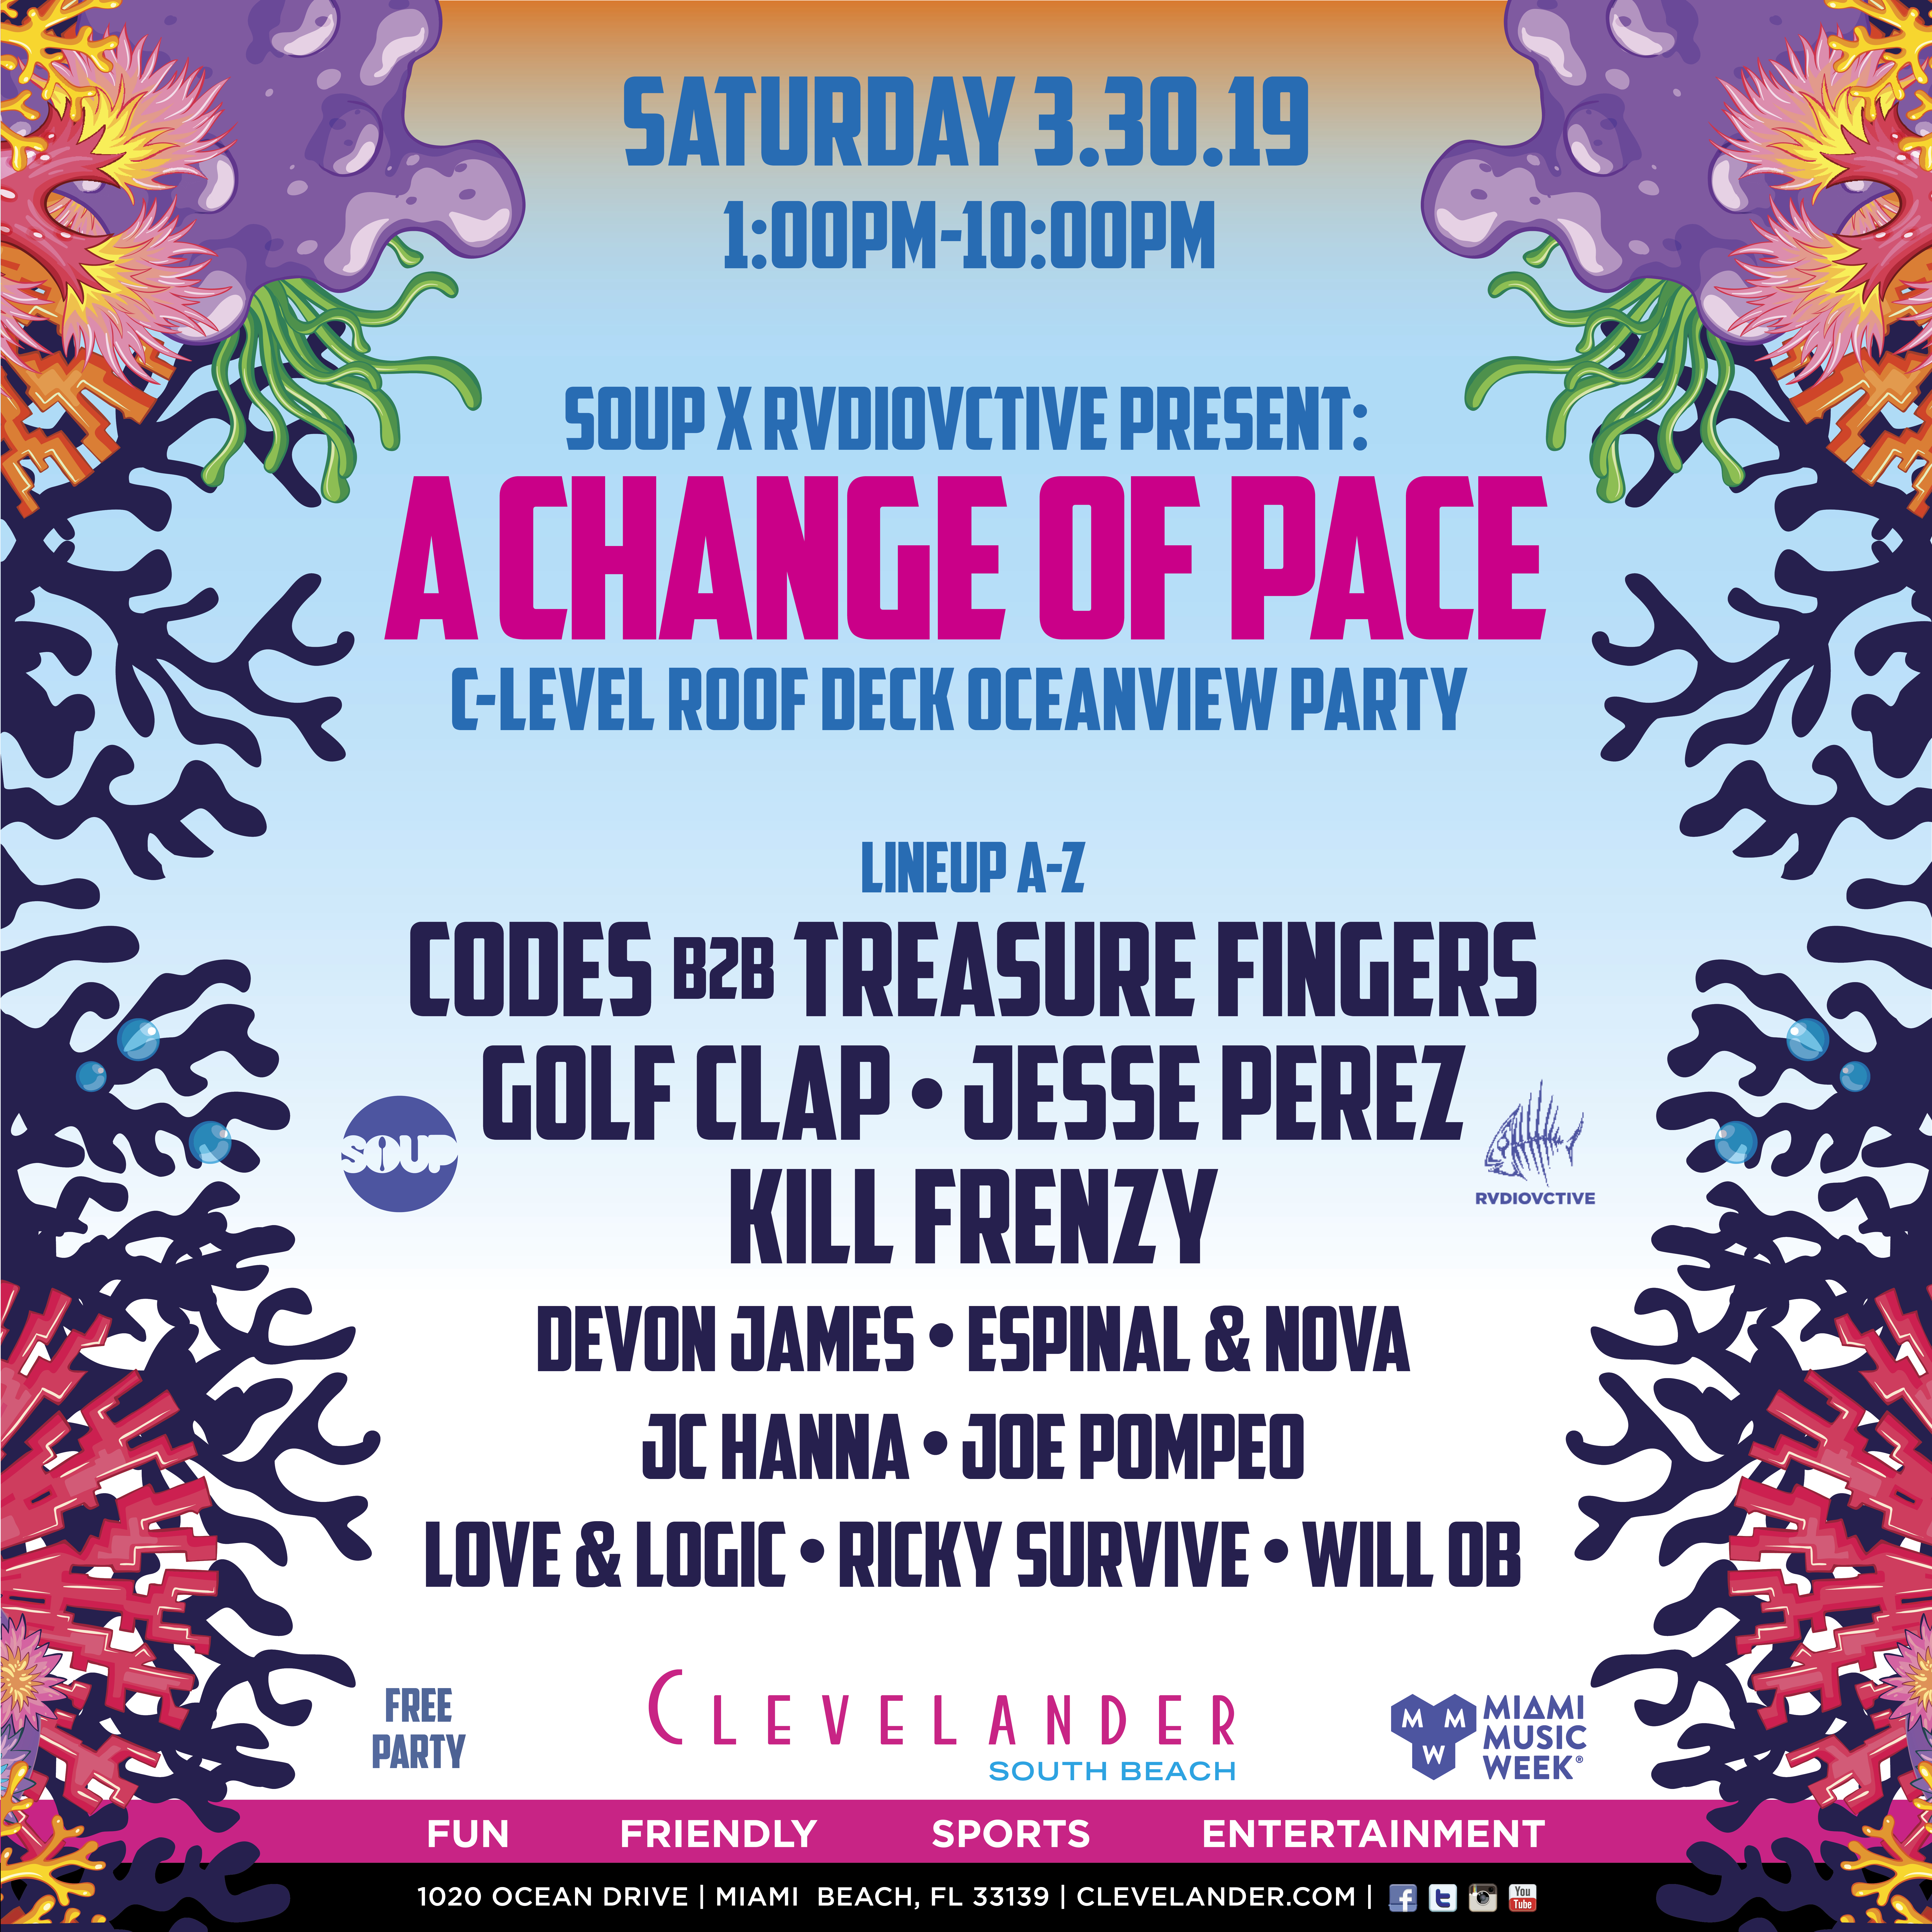 A Change of Pace w/ Codes b2b Treasure Fingers, Golf Clap, Jesse Perez, Kill Frenzy & more! Image